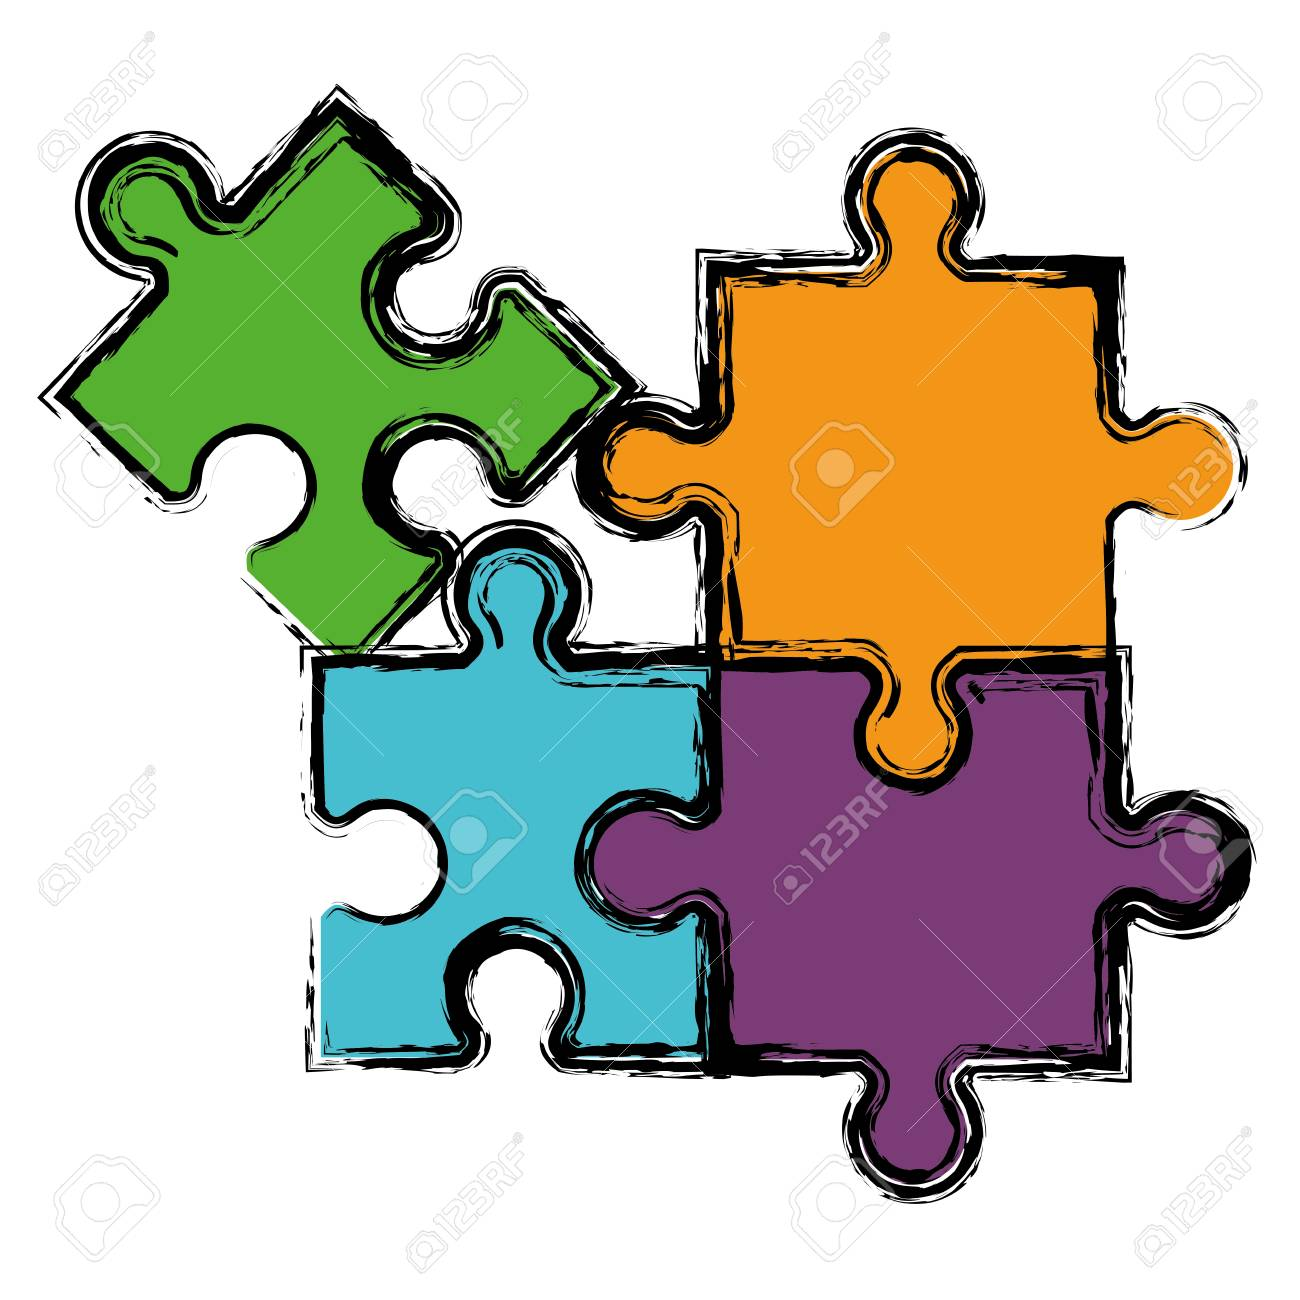 Jigsaw Puzzles Icon Over White Background Colorful Design Vector Illustration Stock